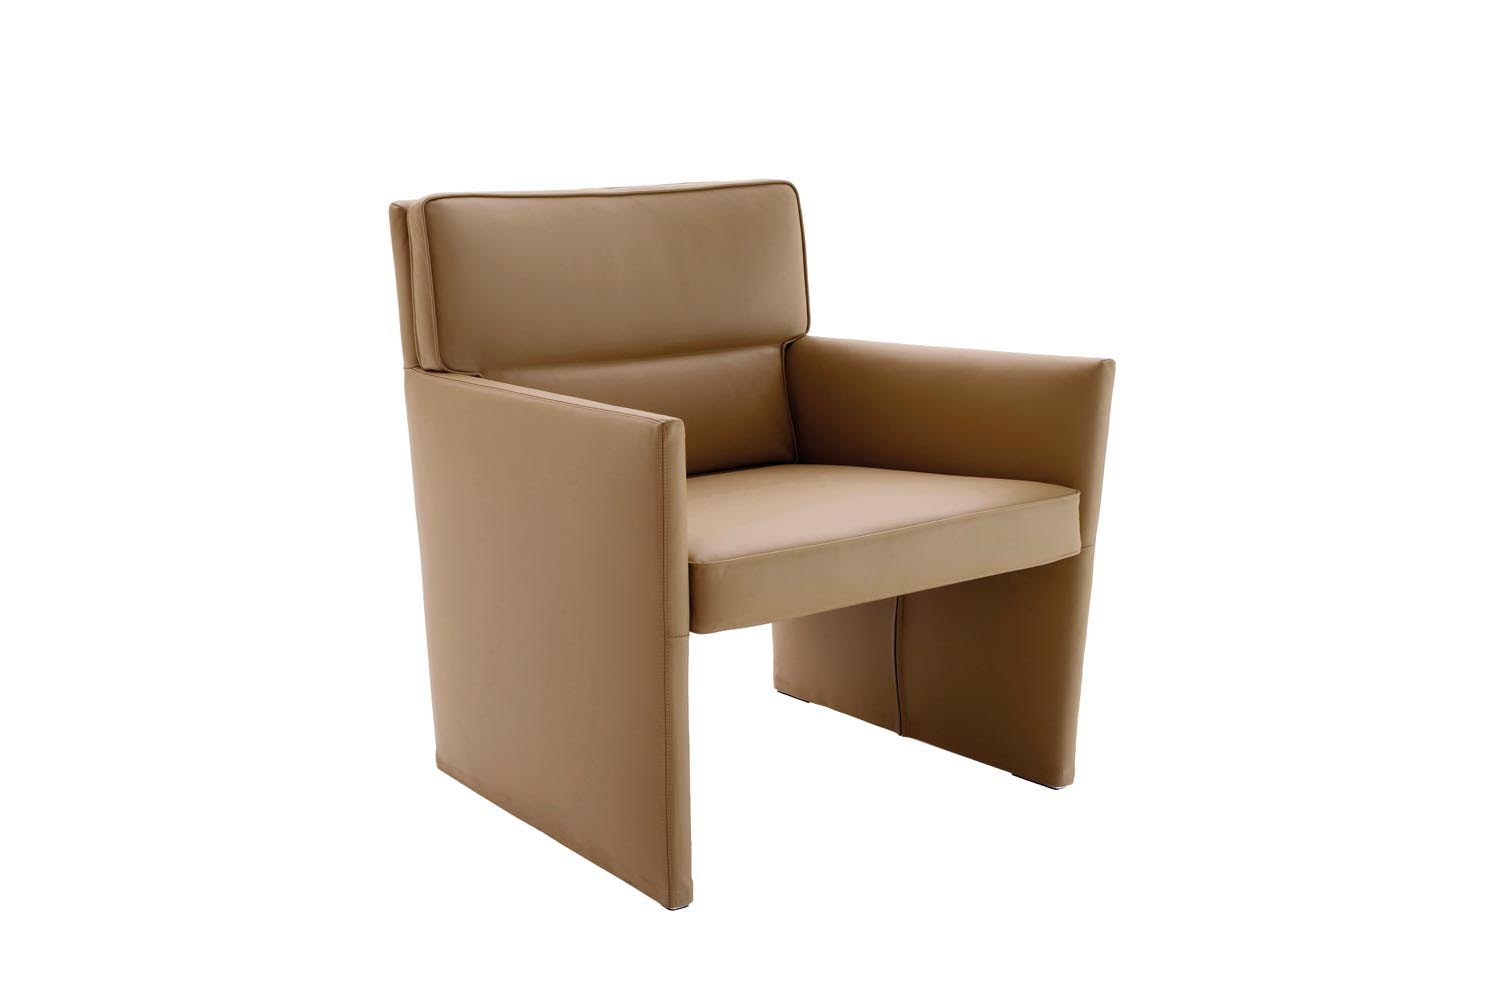 Posa Armchair by David Chipperfield for B&B Italia Project